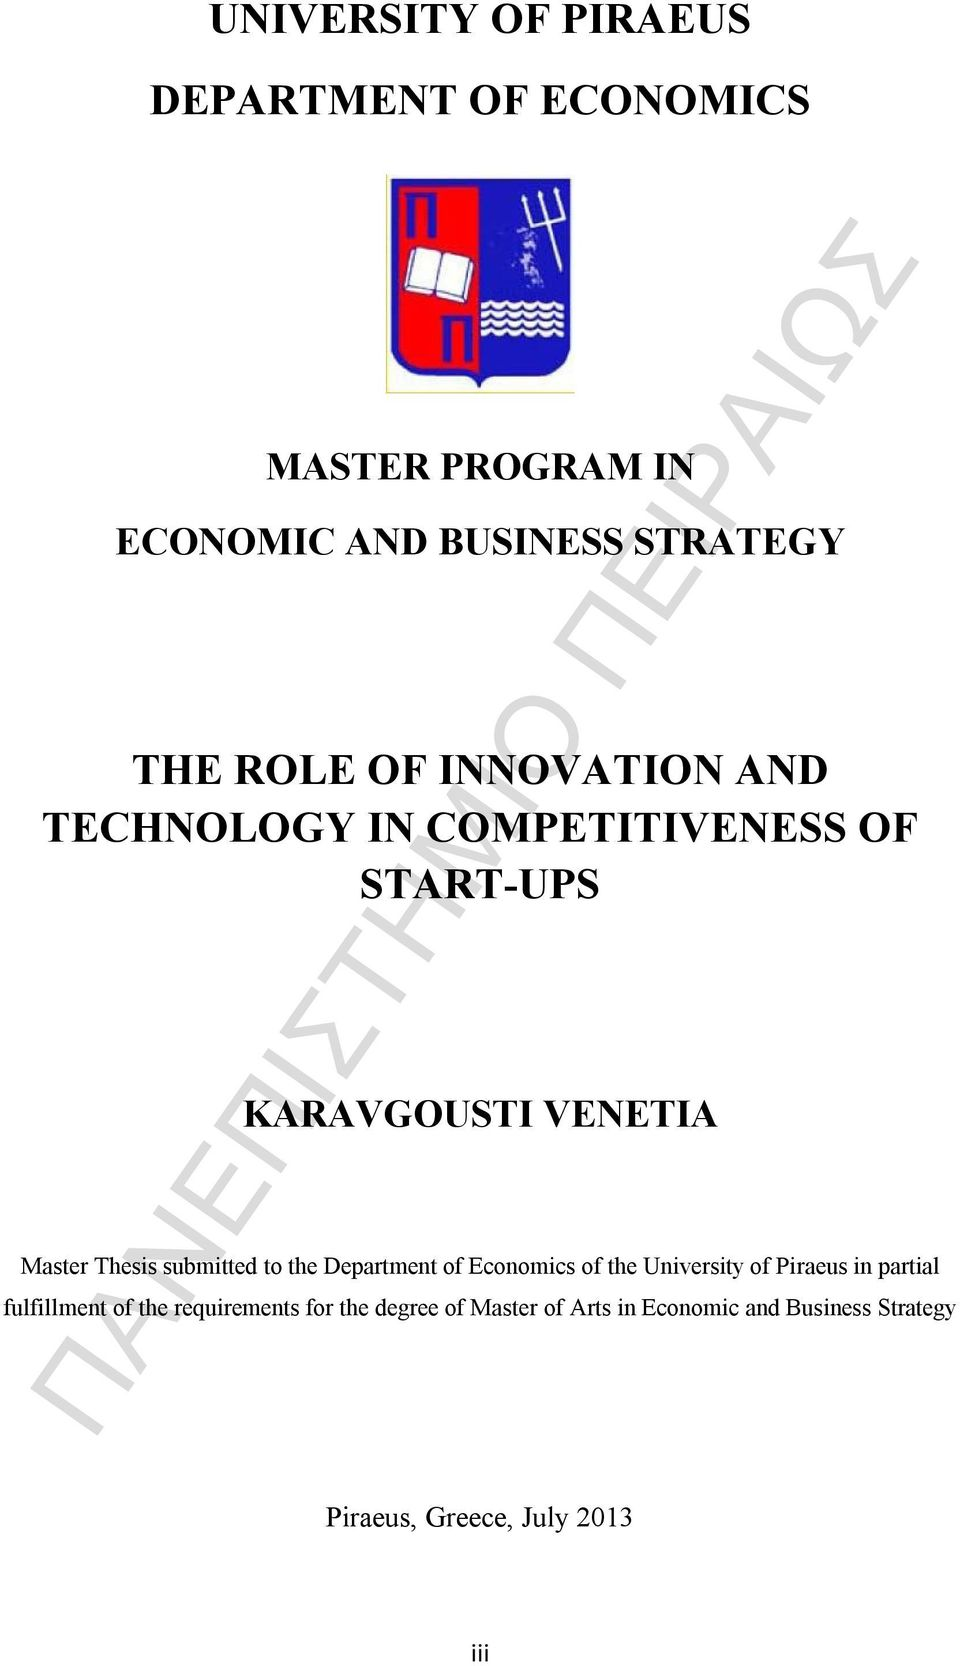 submitted to the Department of Economics of the University of Piraeus in partial fulfillment of the